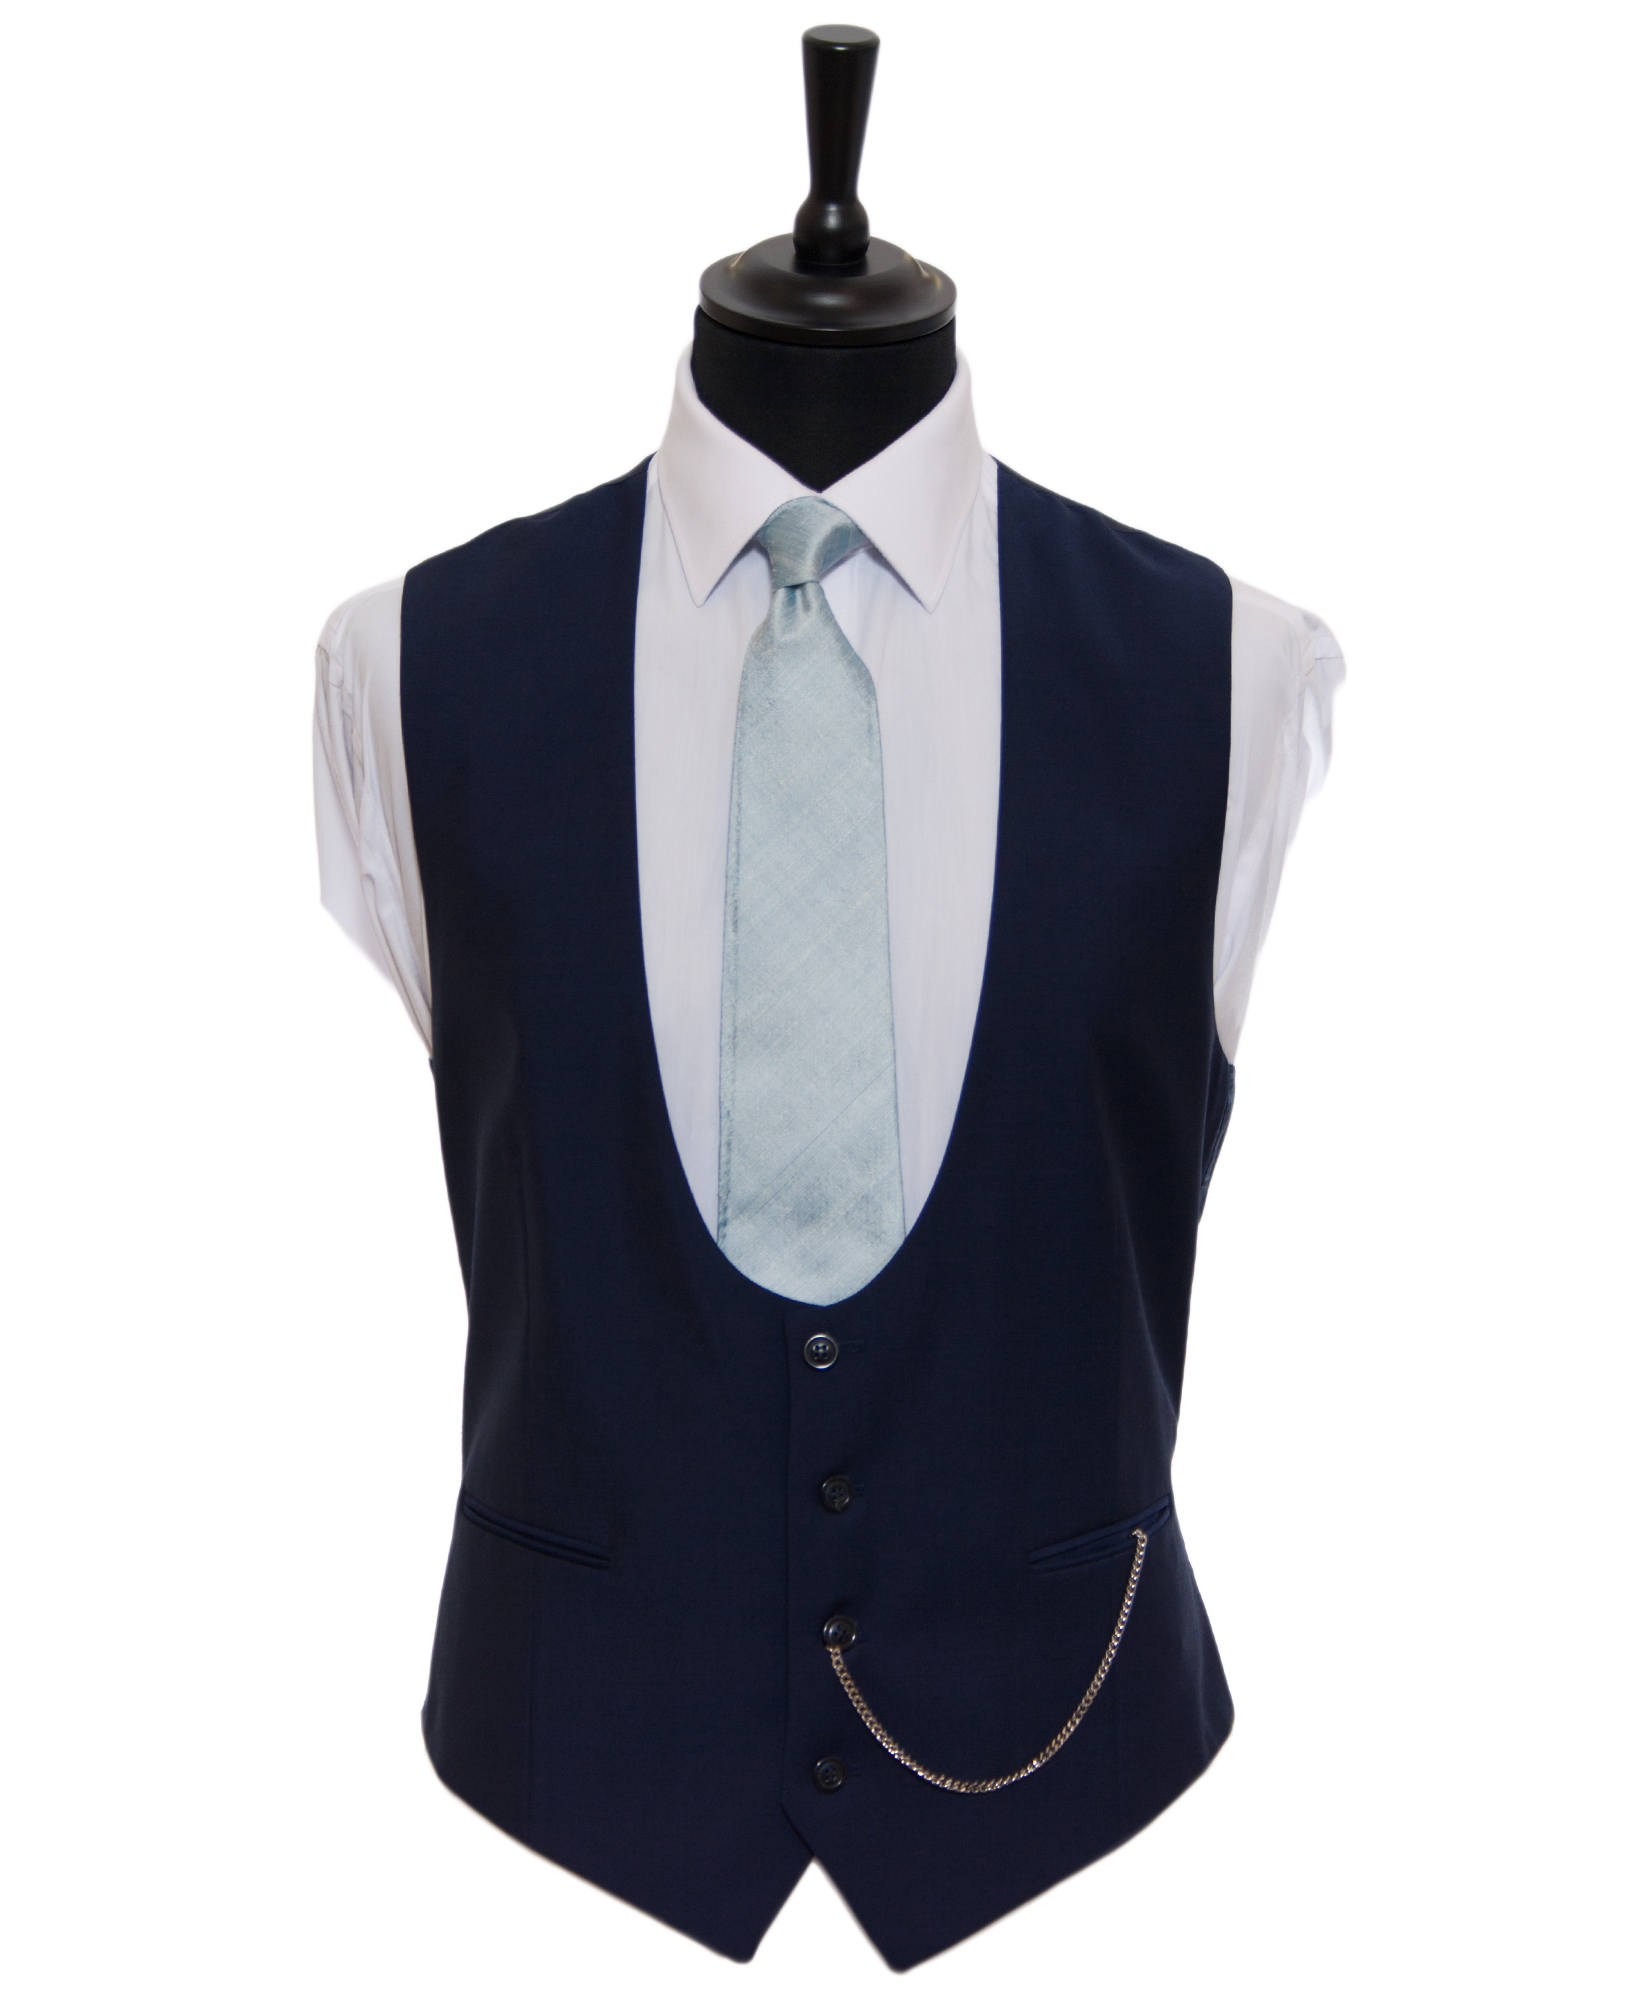 01_french navy slim cut horseshoe waistcoat.jpg: 5650 bytes